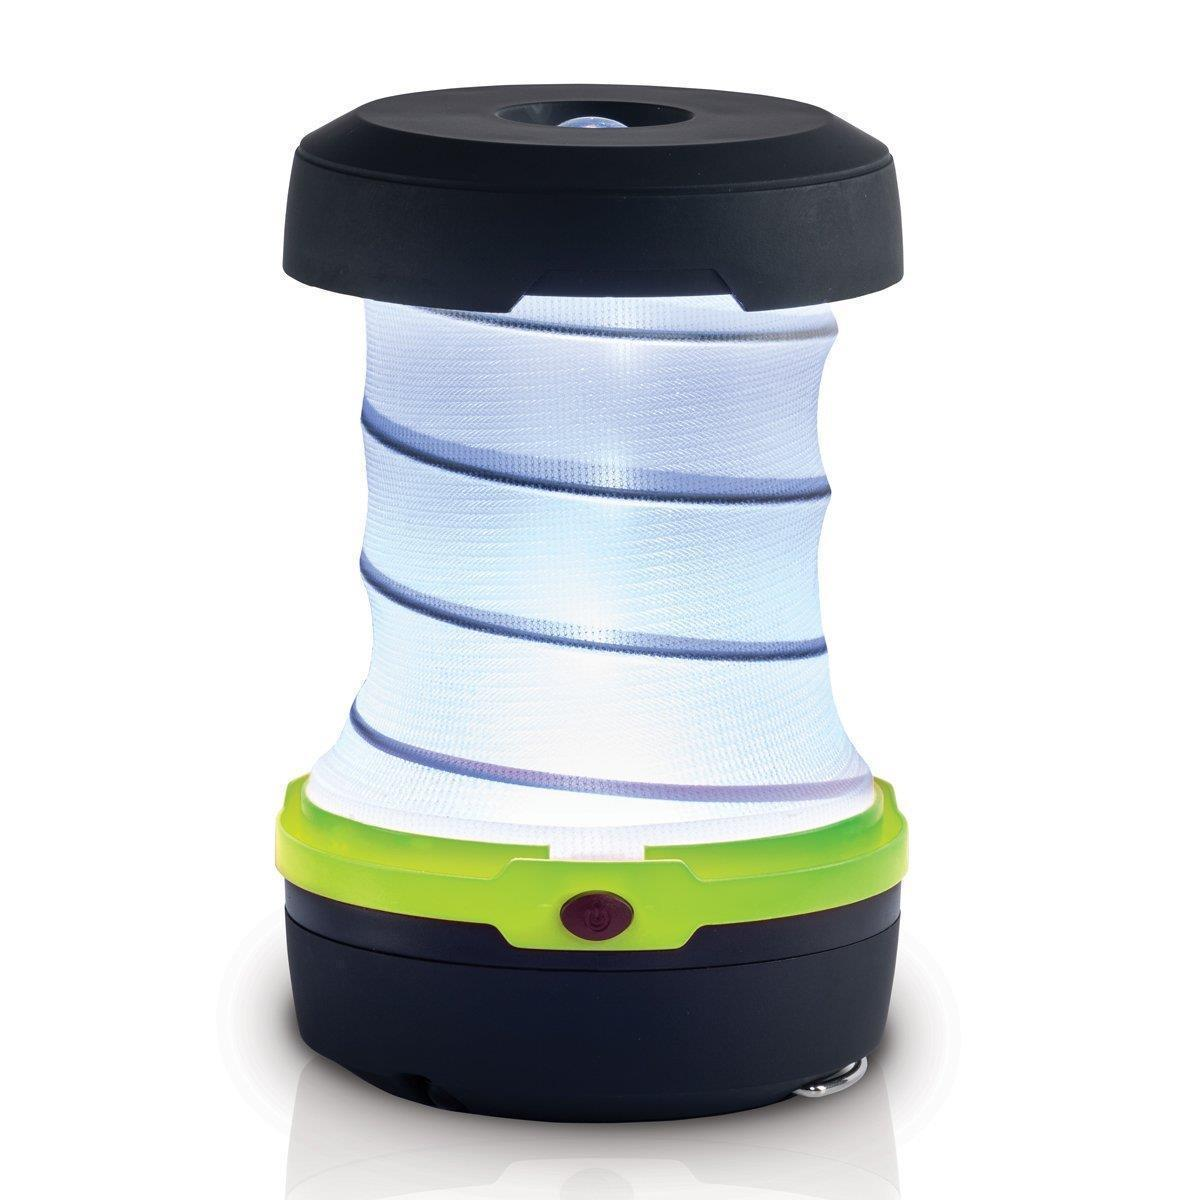 JML Magneto Travel Light Bright Powerful Pop-Up Lantern